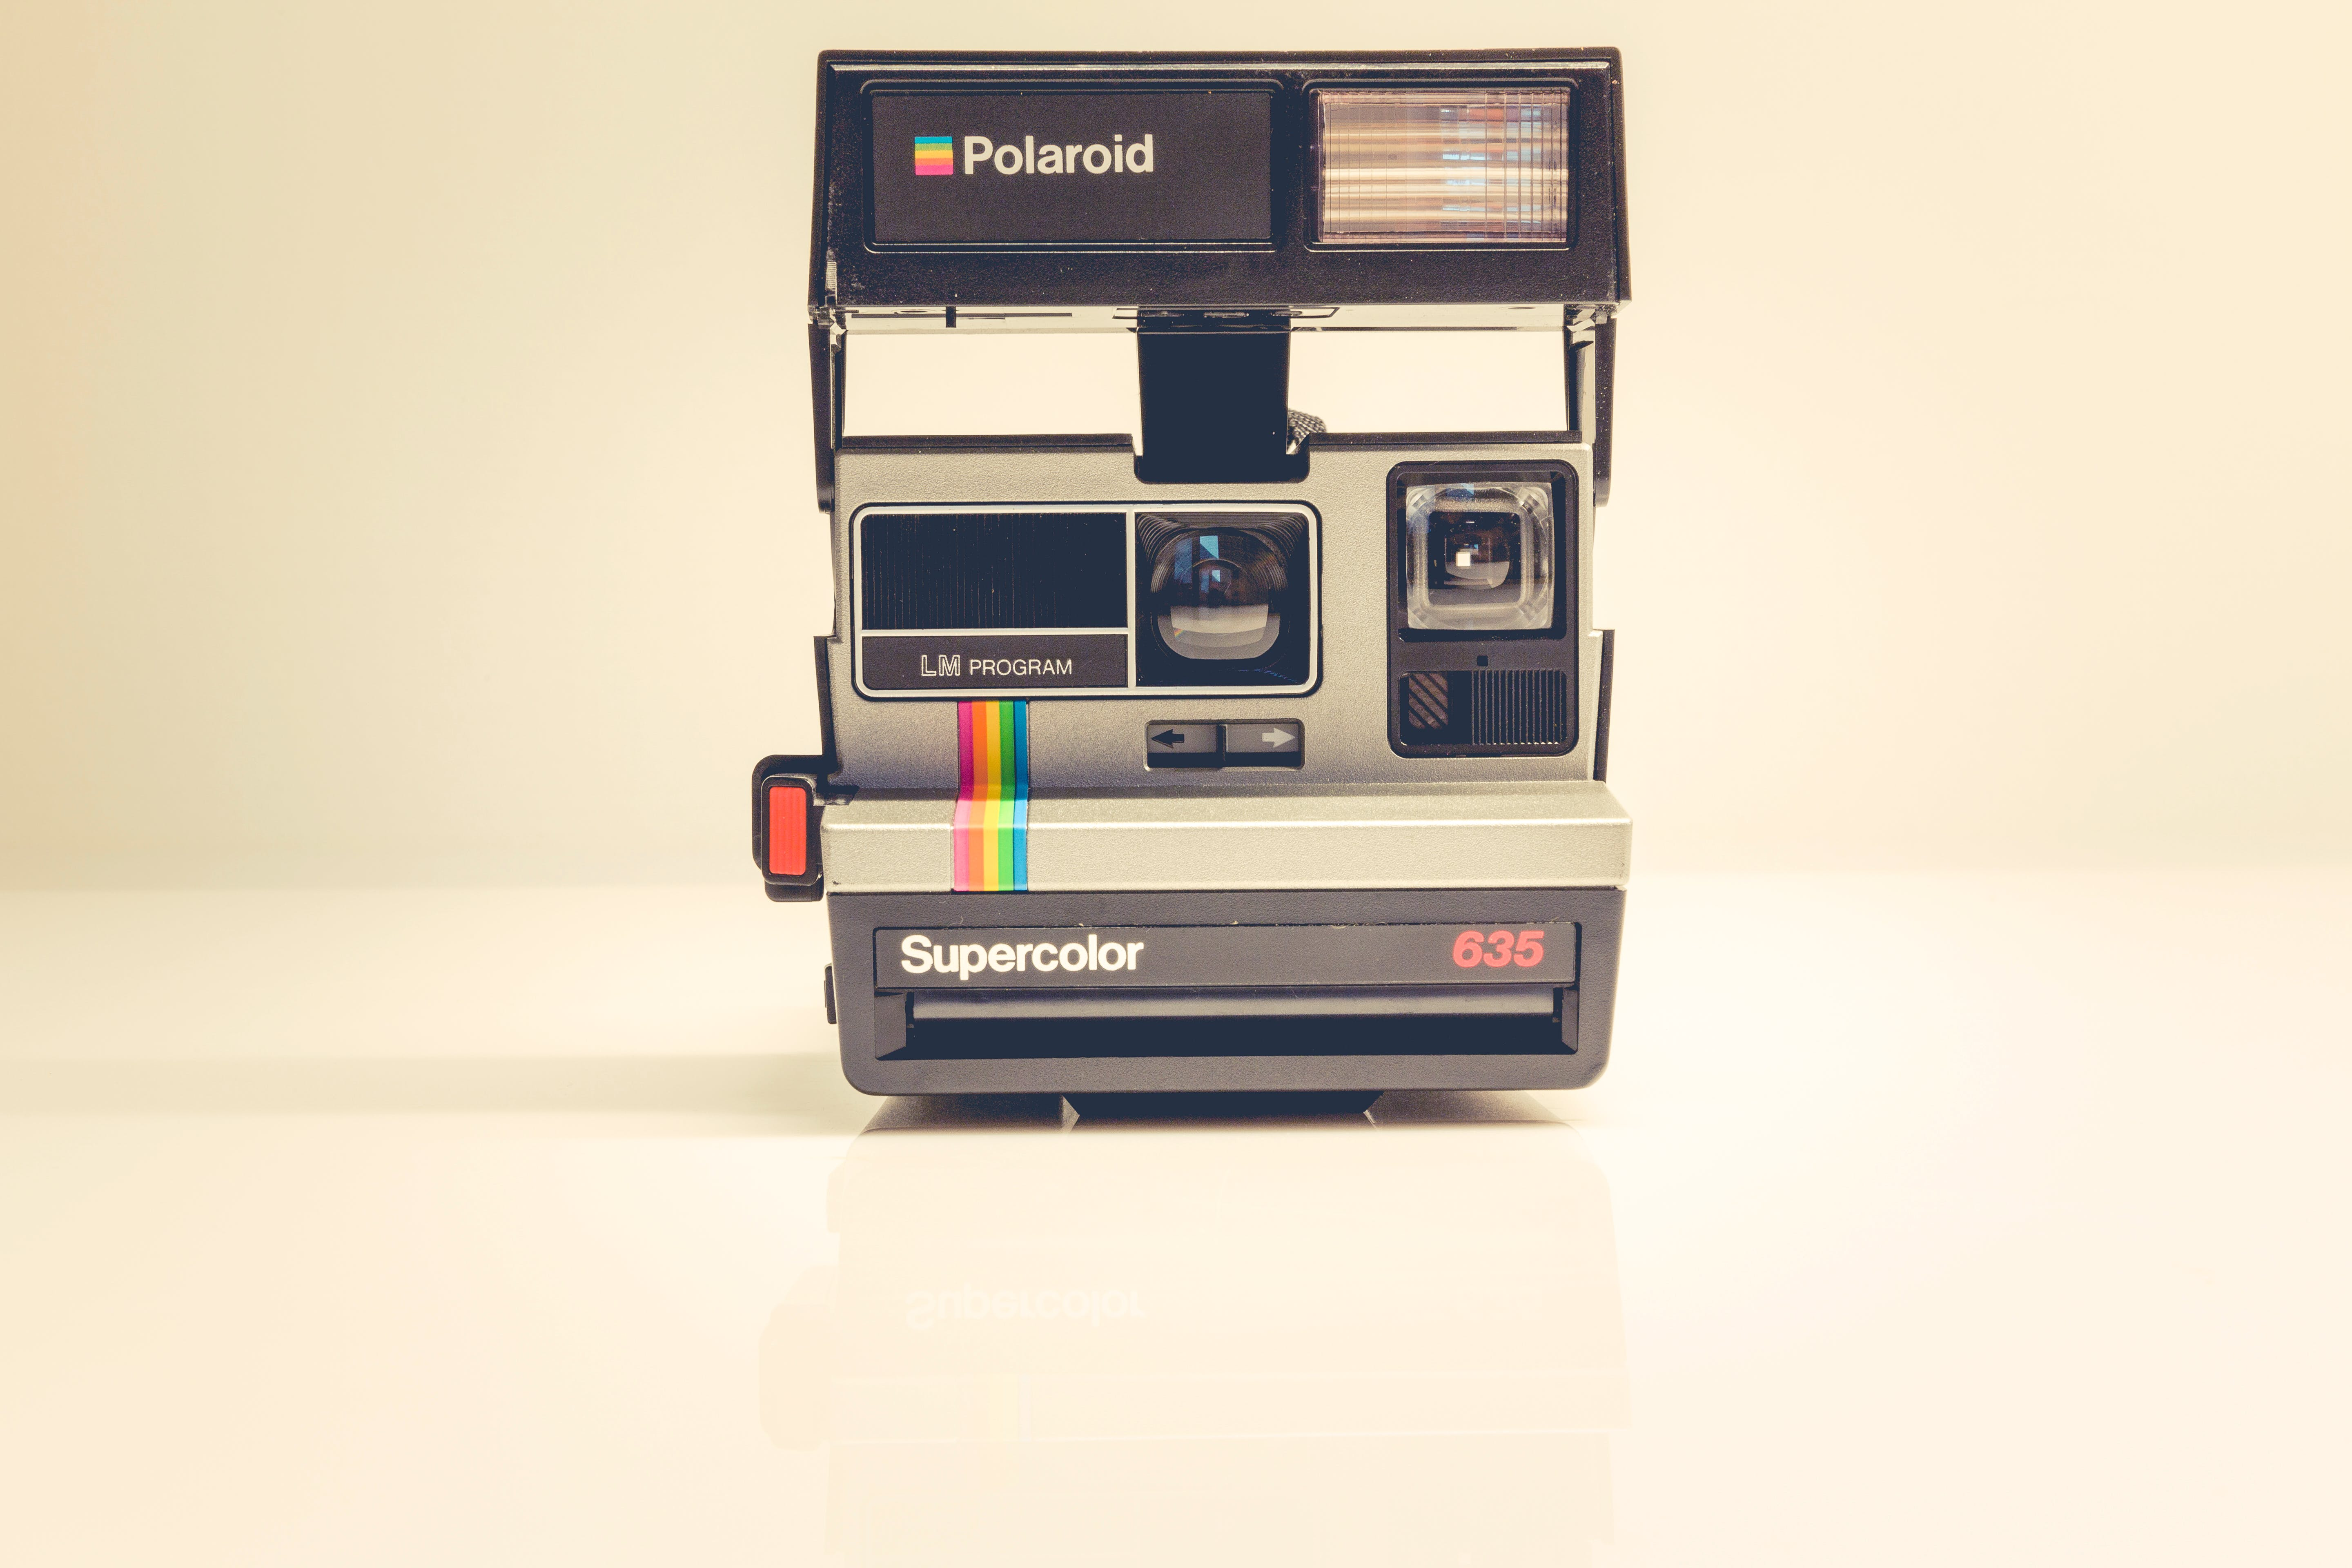 Polaroid Supercolor 635 Cmaera